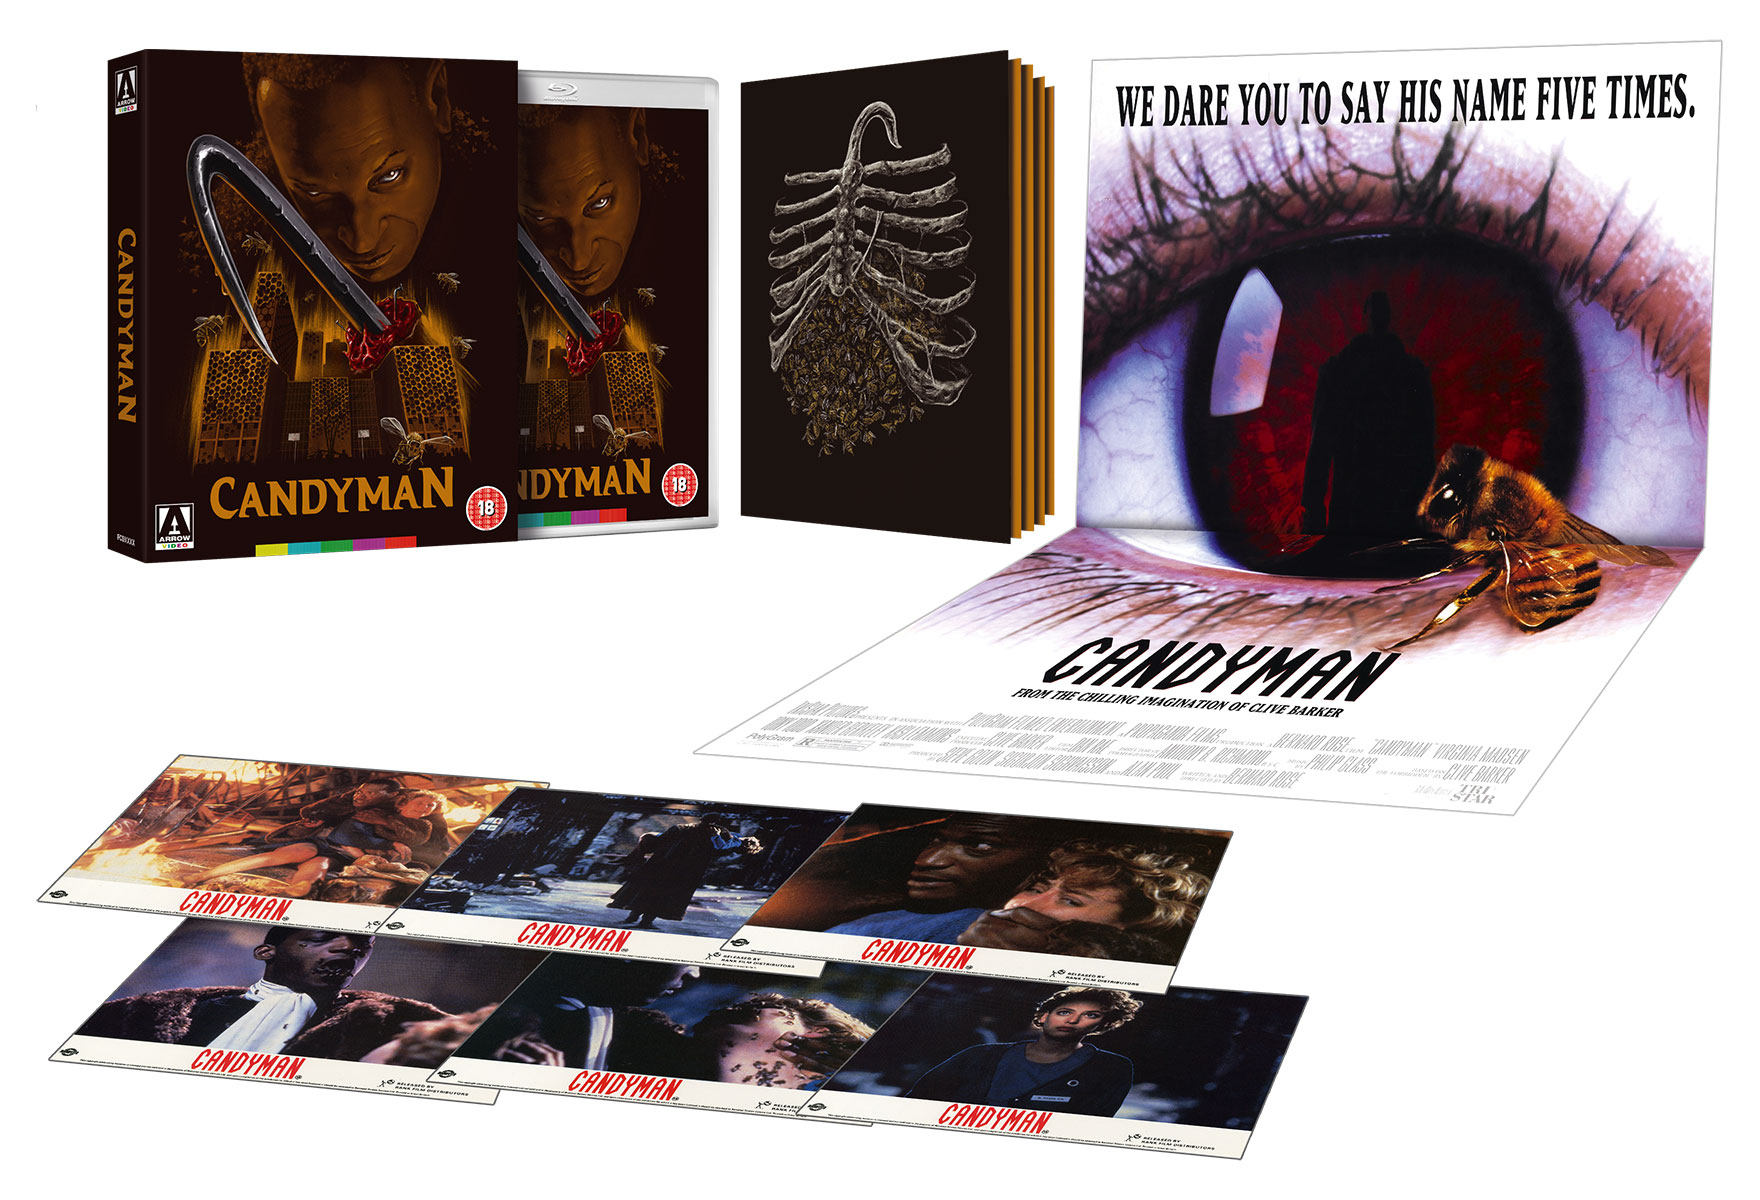 CANDYMAN - Must-Own: Arrow Video's CANDYMAN Limited Edition Blu-ray